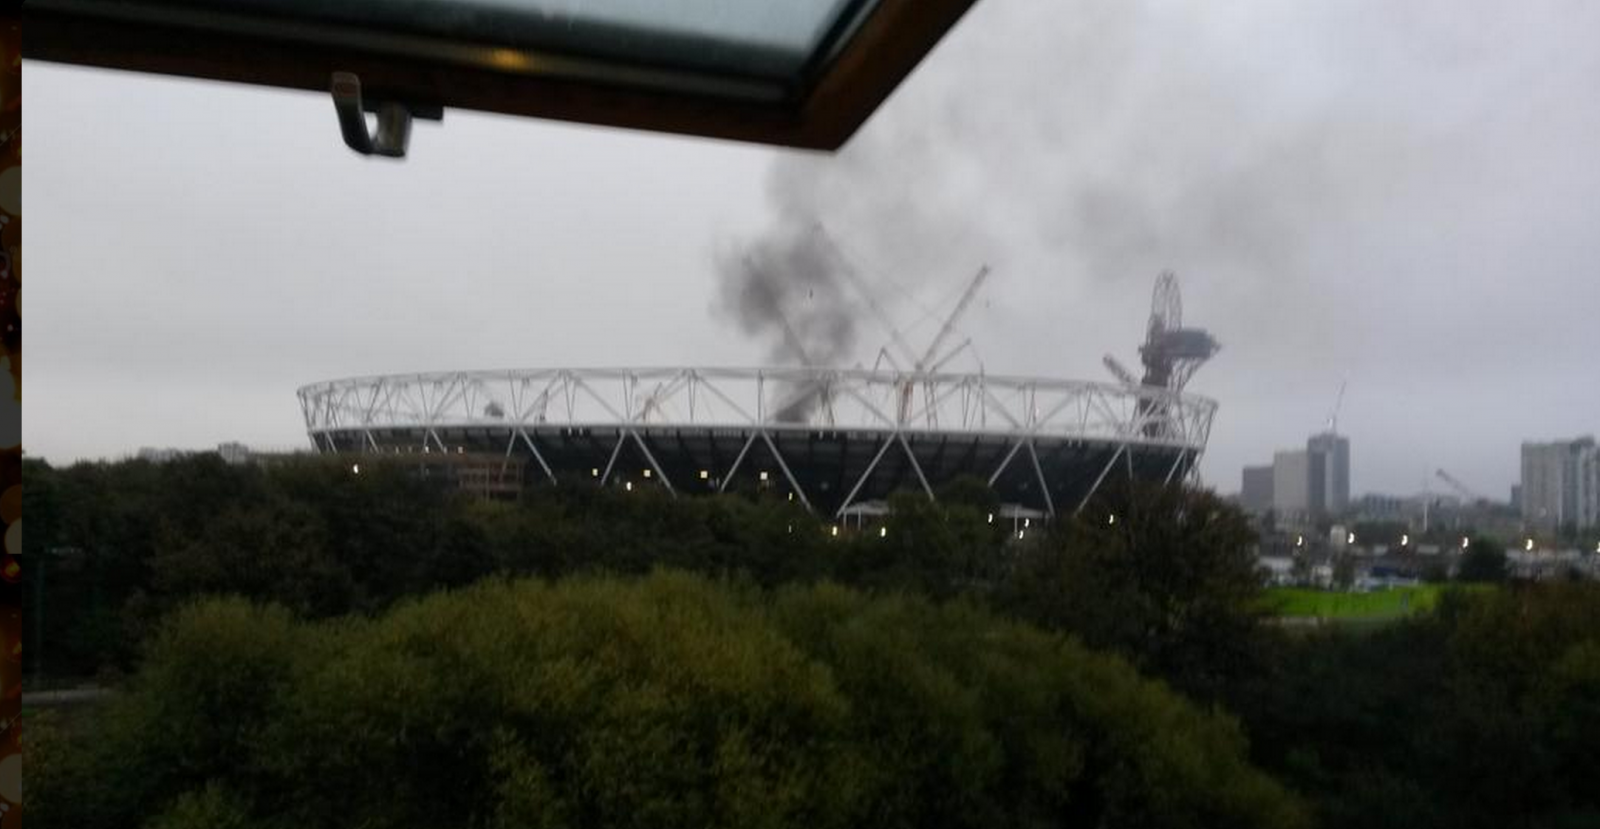 Fire at Olympic Stadium London